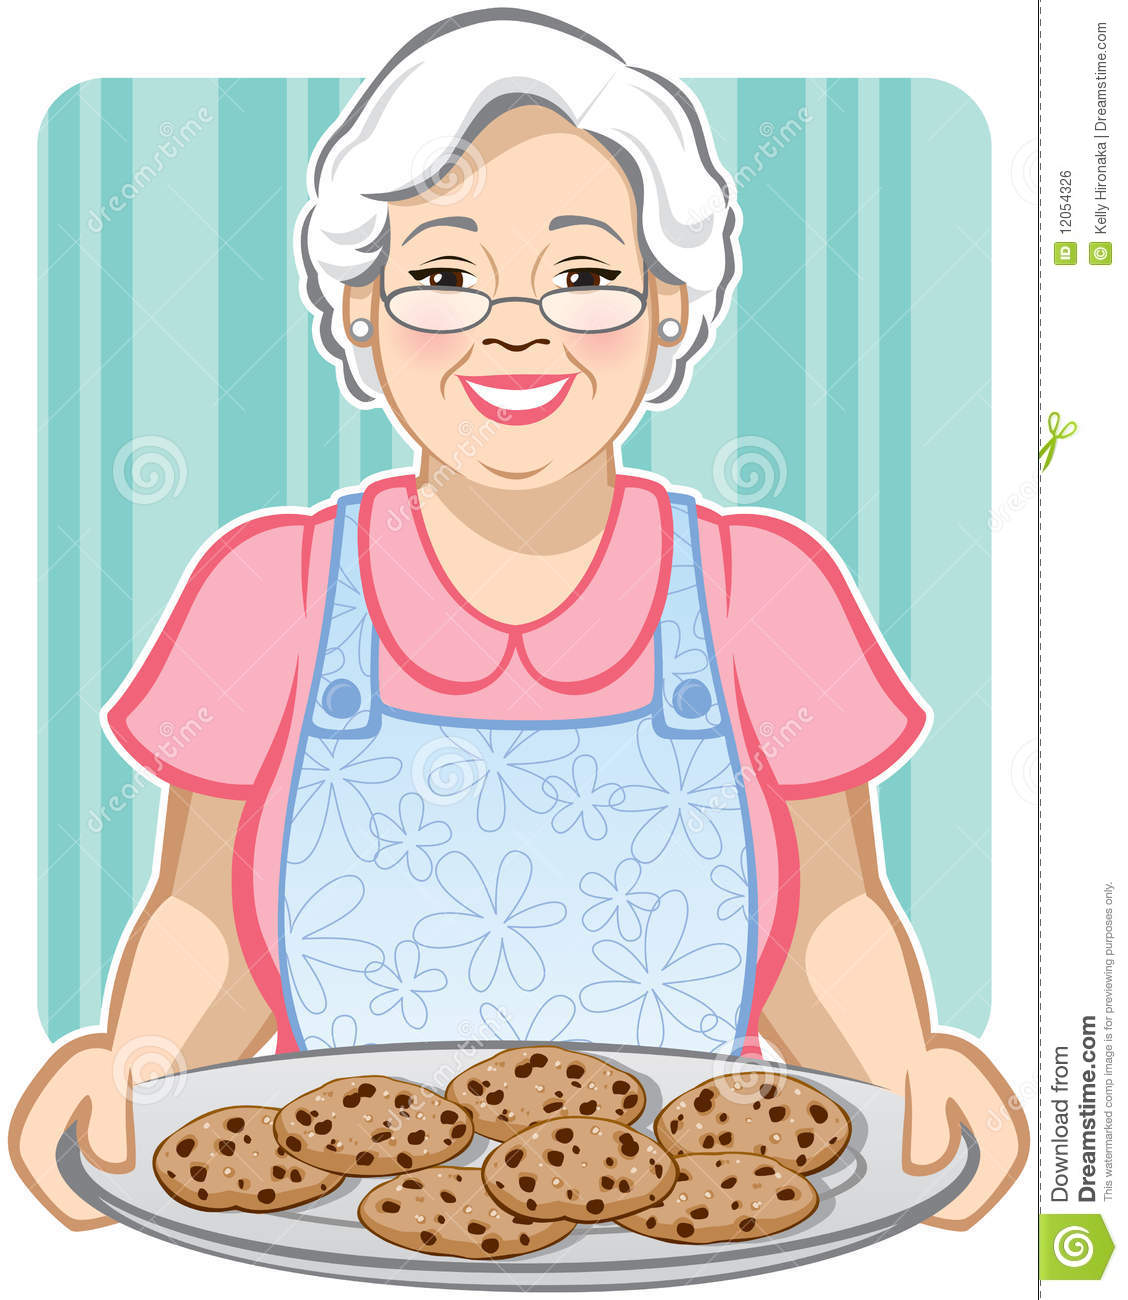 ... of a Grandmother with a platter of chocolate chip cookies